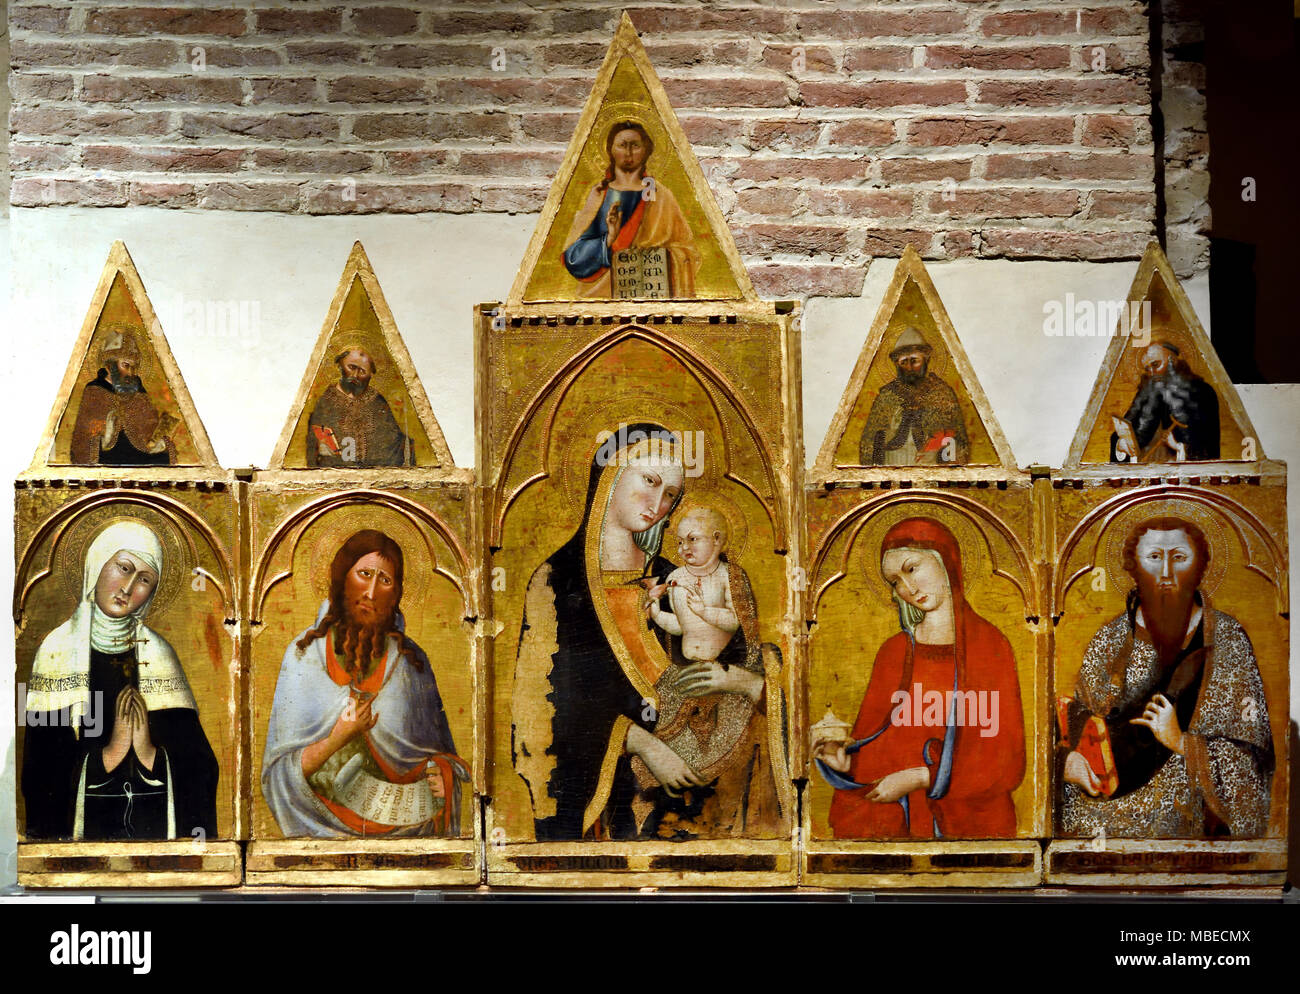 Madonna and Child with Saints Bona, John the Baptist, Mary Magdalene, and Bartholomew, In the cusps God father among the Saints Doctors and Antonio Abate by Giovanni di Nicola 14th Century Pisa.  Italy Italian - Stock Image